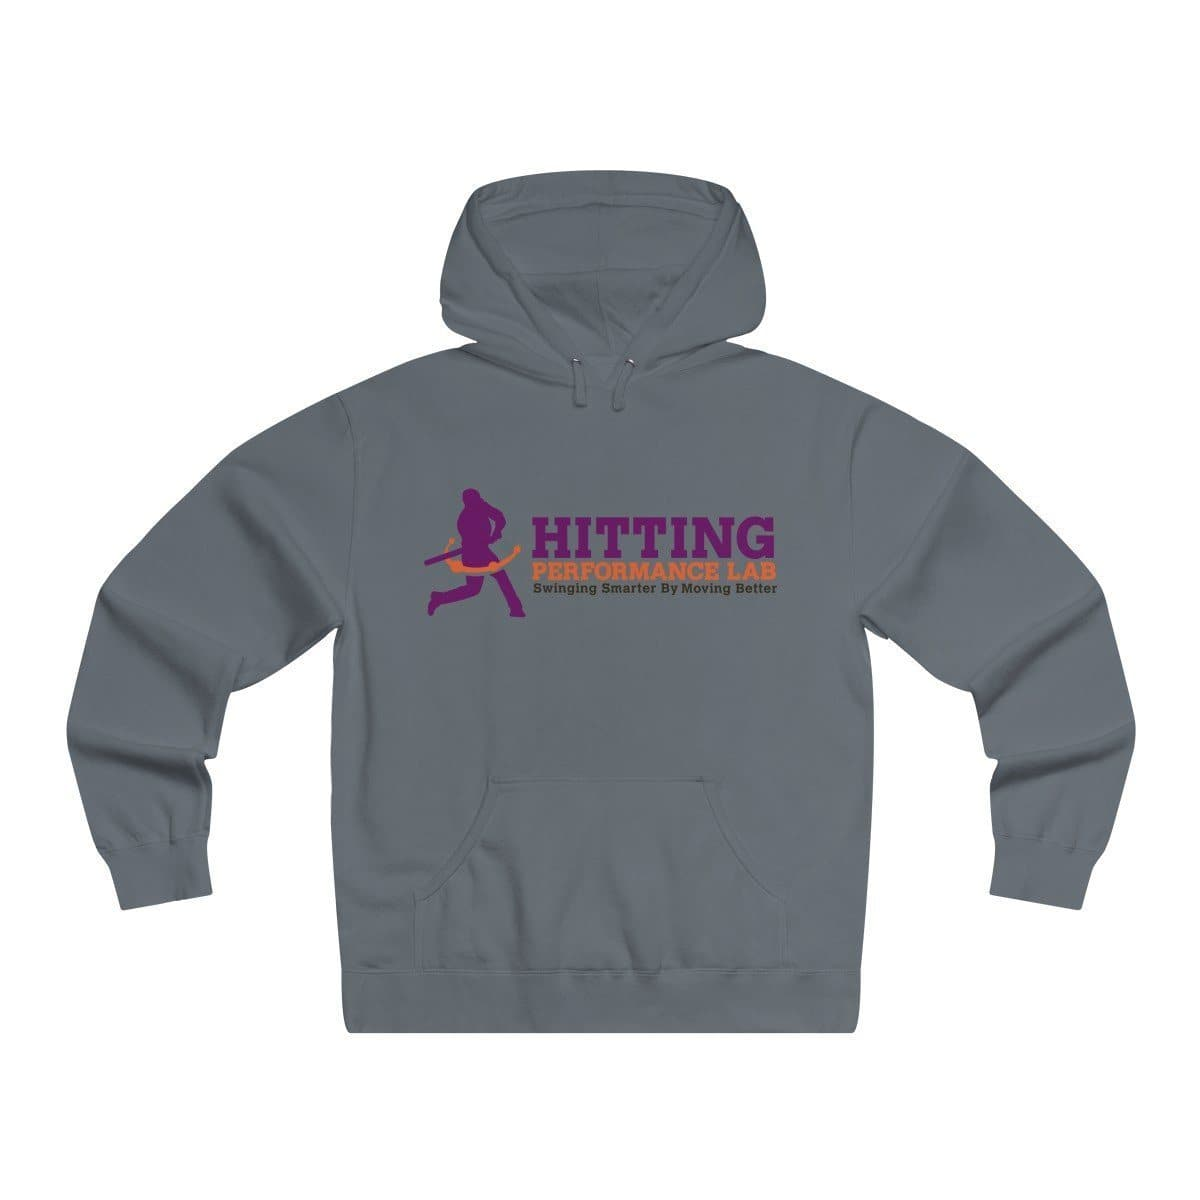 Men's Lightweight Pullover Hooded Sweatshirt w/ Hitting Performance Lab Logo